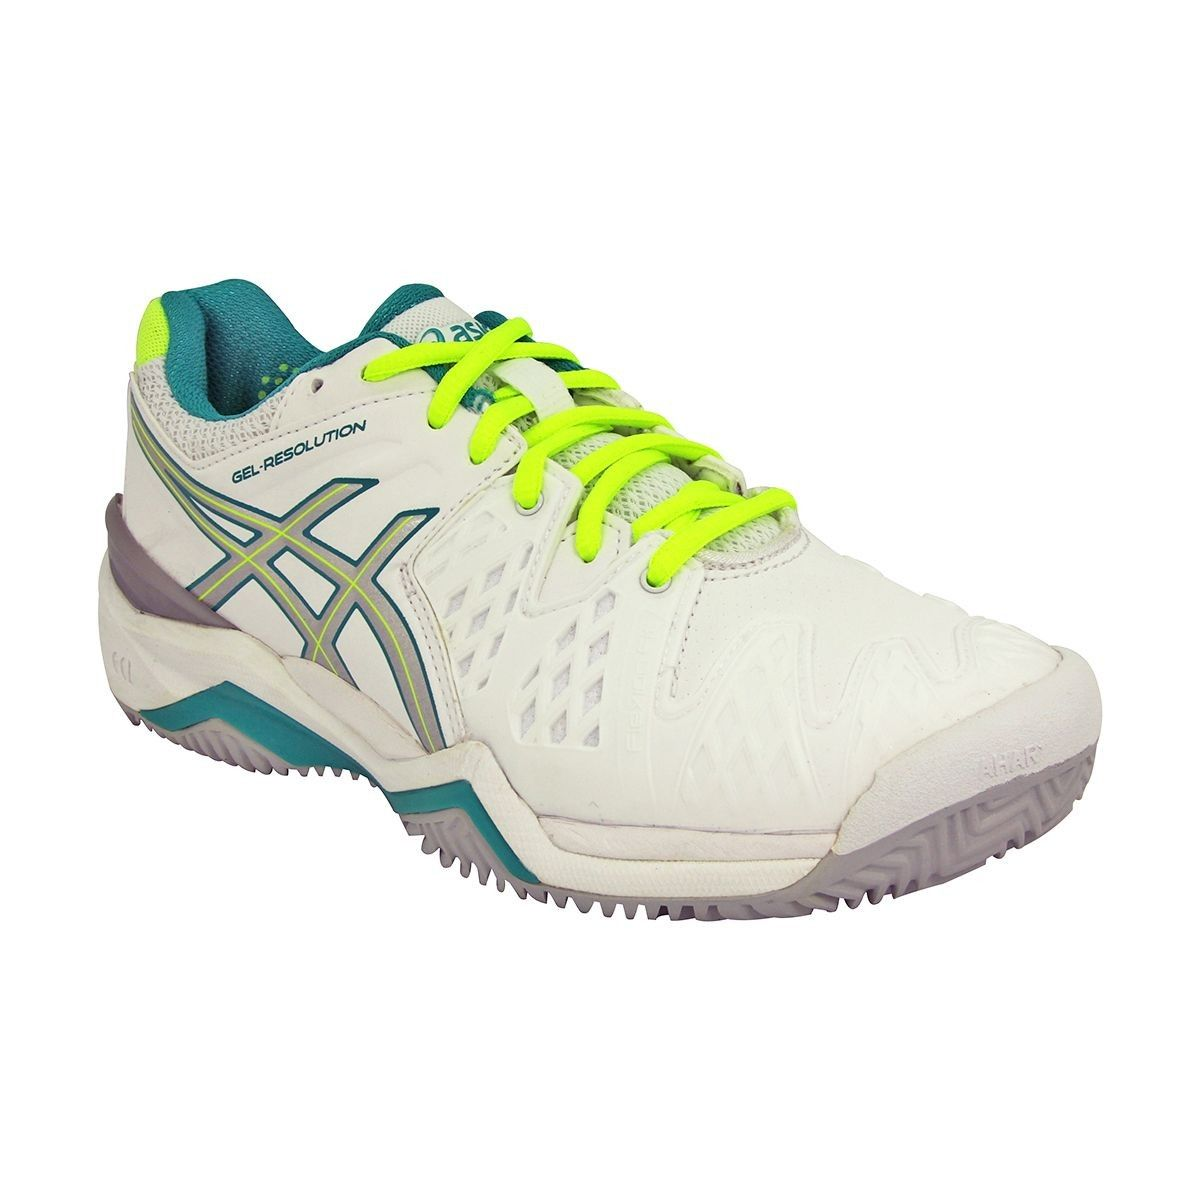 Asics GEL RESOLUTION 6 Chaussures de Tennis Femme blanc